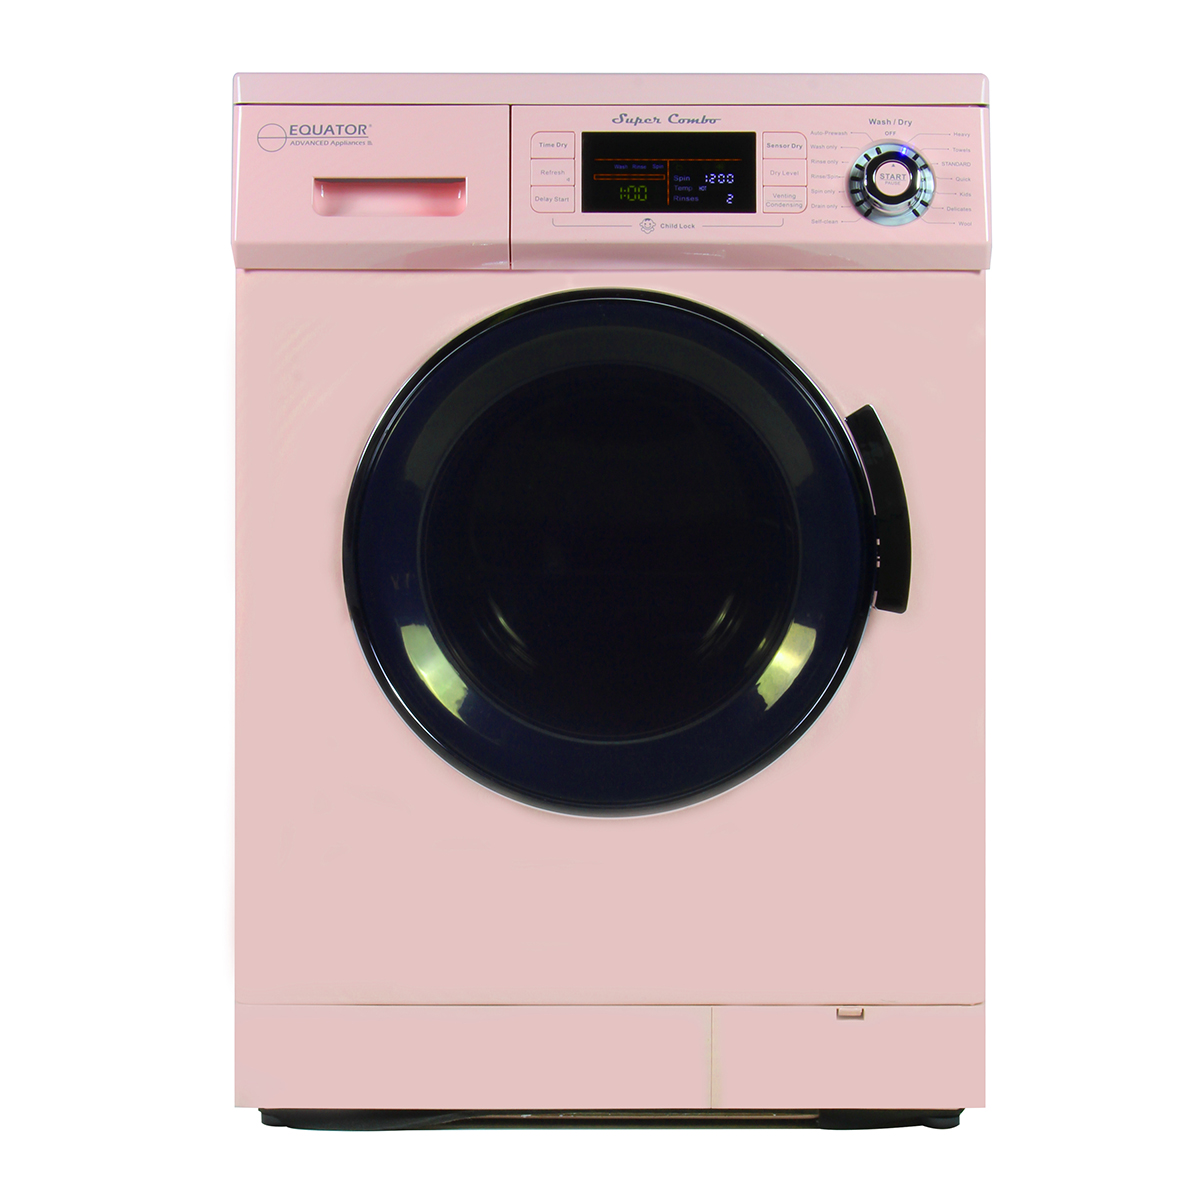 Equator Super Combo Washer Dryer EZ 4400 CV Pink